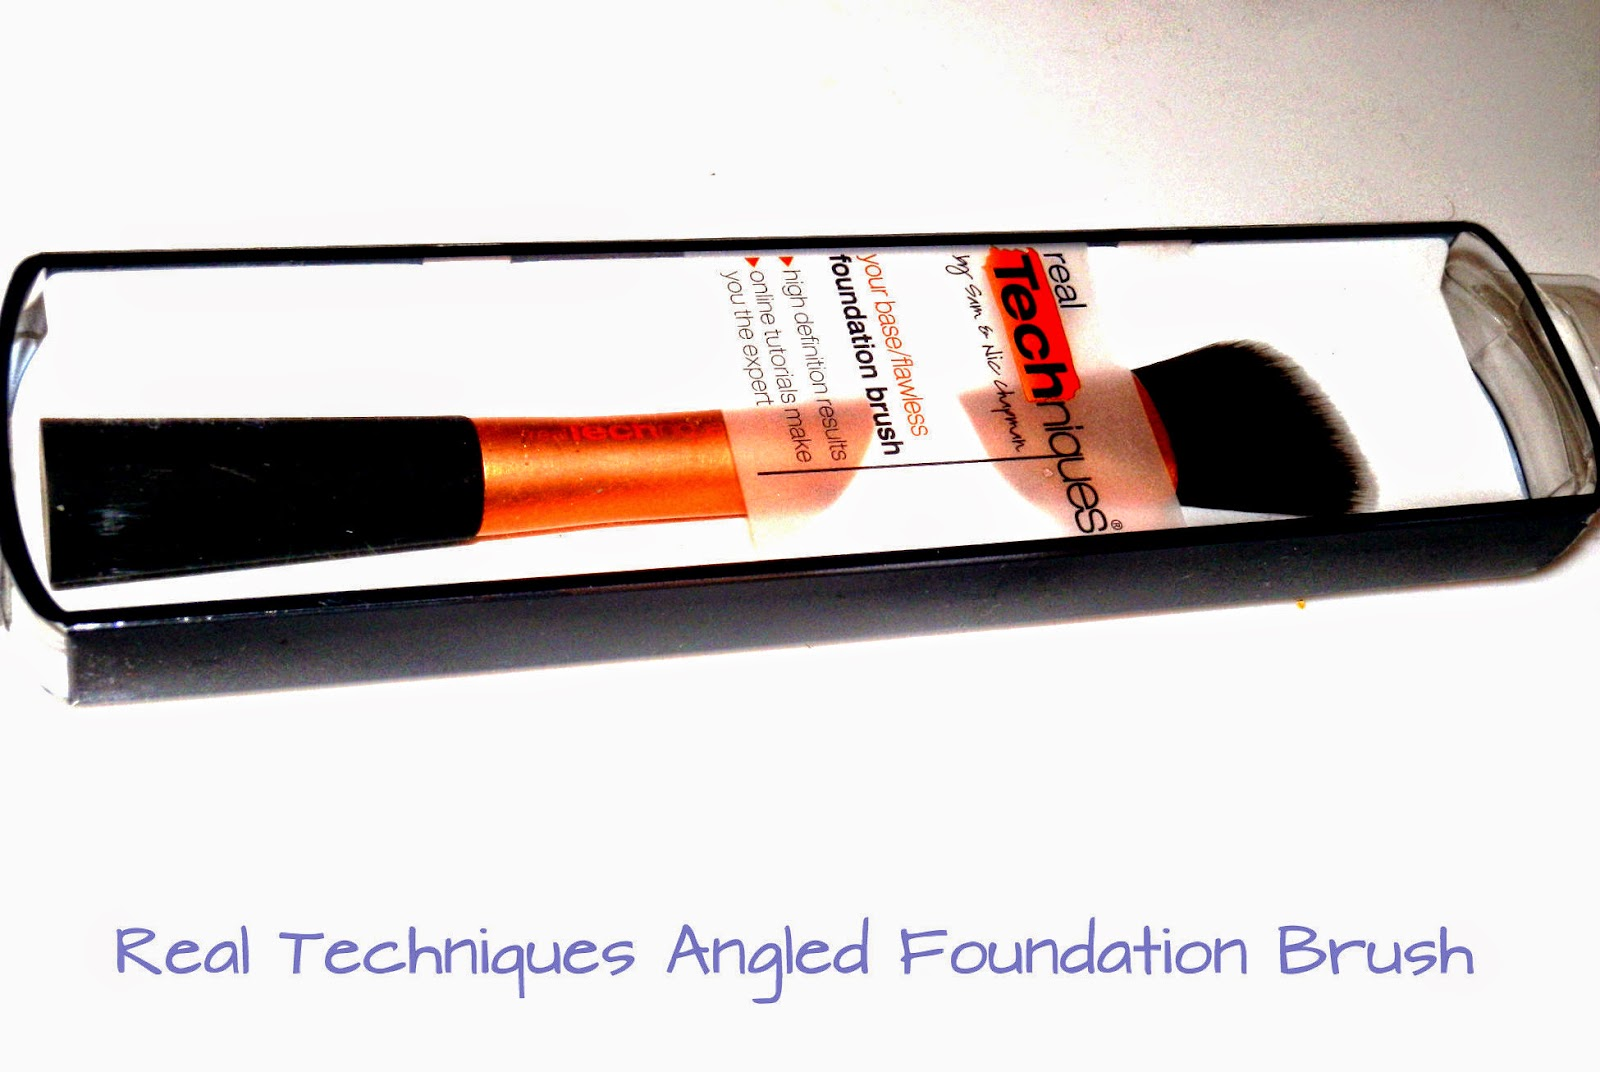 Real Techniques Angled Foundation Brush